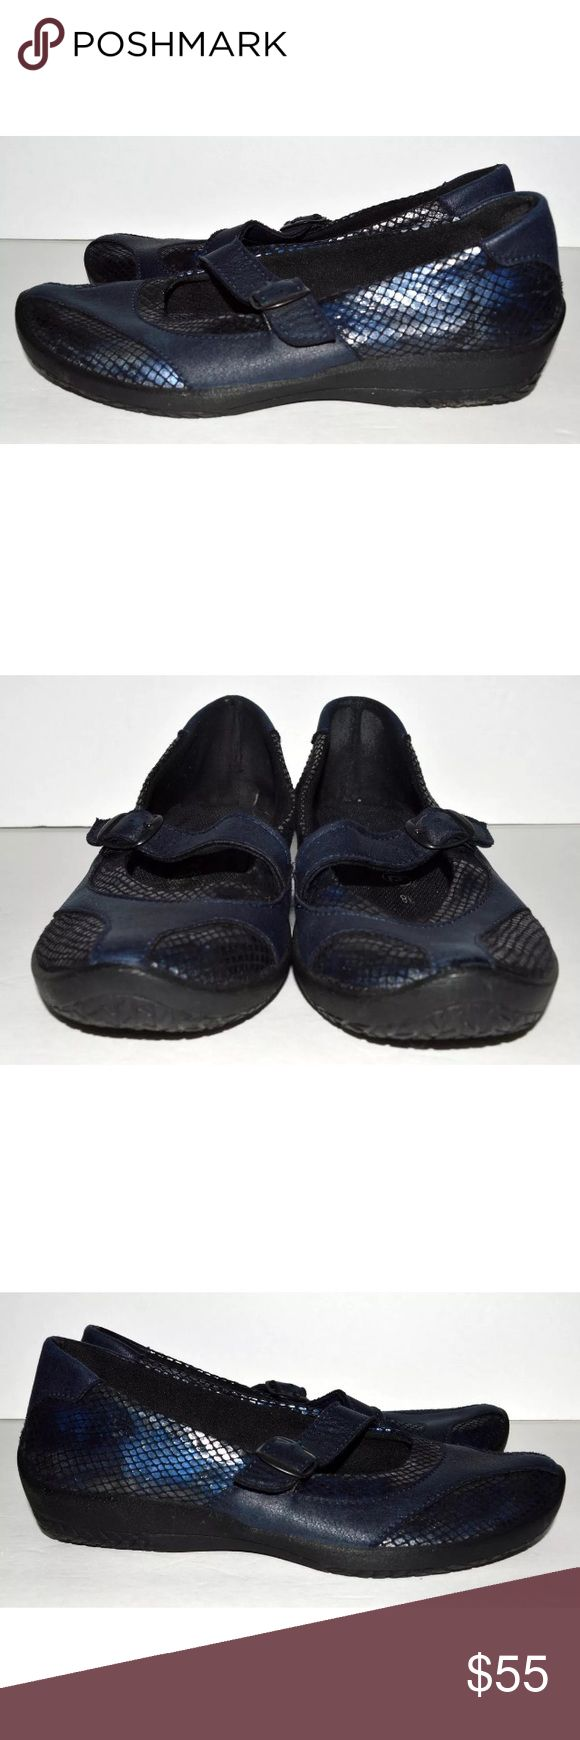 Arcopedico 38 Blue Metallic Mary Jane Shoes $135 Arcopedico 38 Blue Metallic Mary Jane Shoes $135  CONDITION: Pre-owned and stored in a smoke free / dog friendly home. Wear from use as pictured such as scuffing, marks, sole, and footbed wear.  Please see all photos and use the zoom option to make a personal assessment of the condition. The shoes have been wiped down but may require additional cleaning. Arcopedico Shoes Flats & Loafers